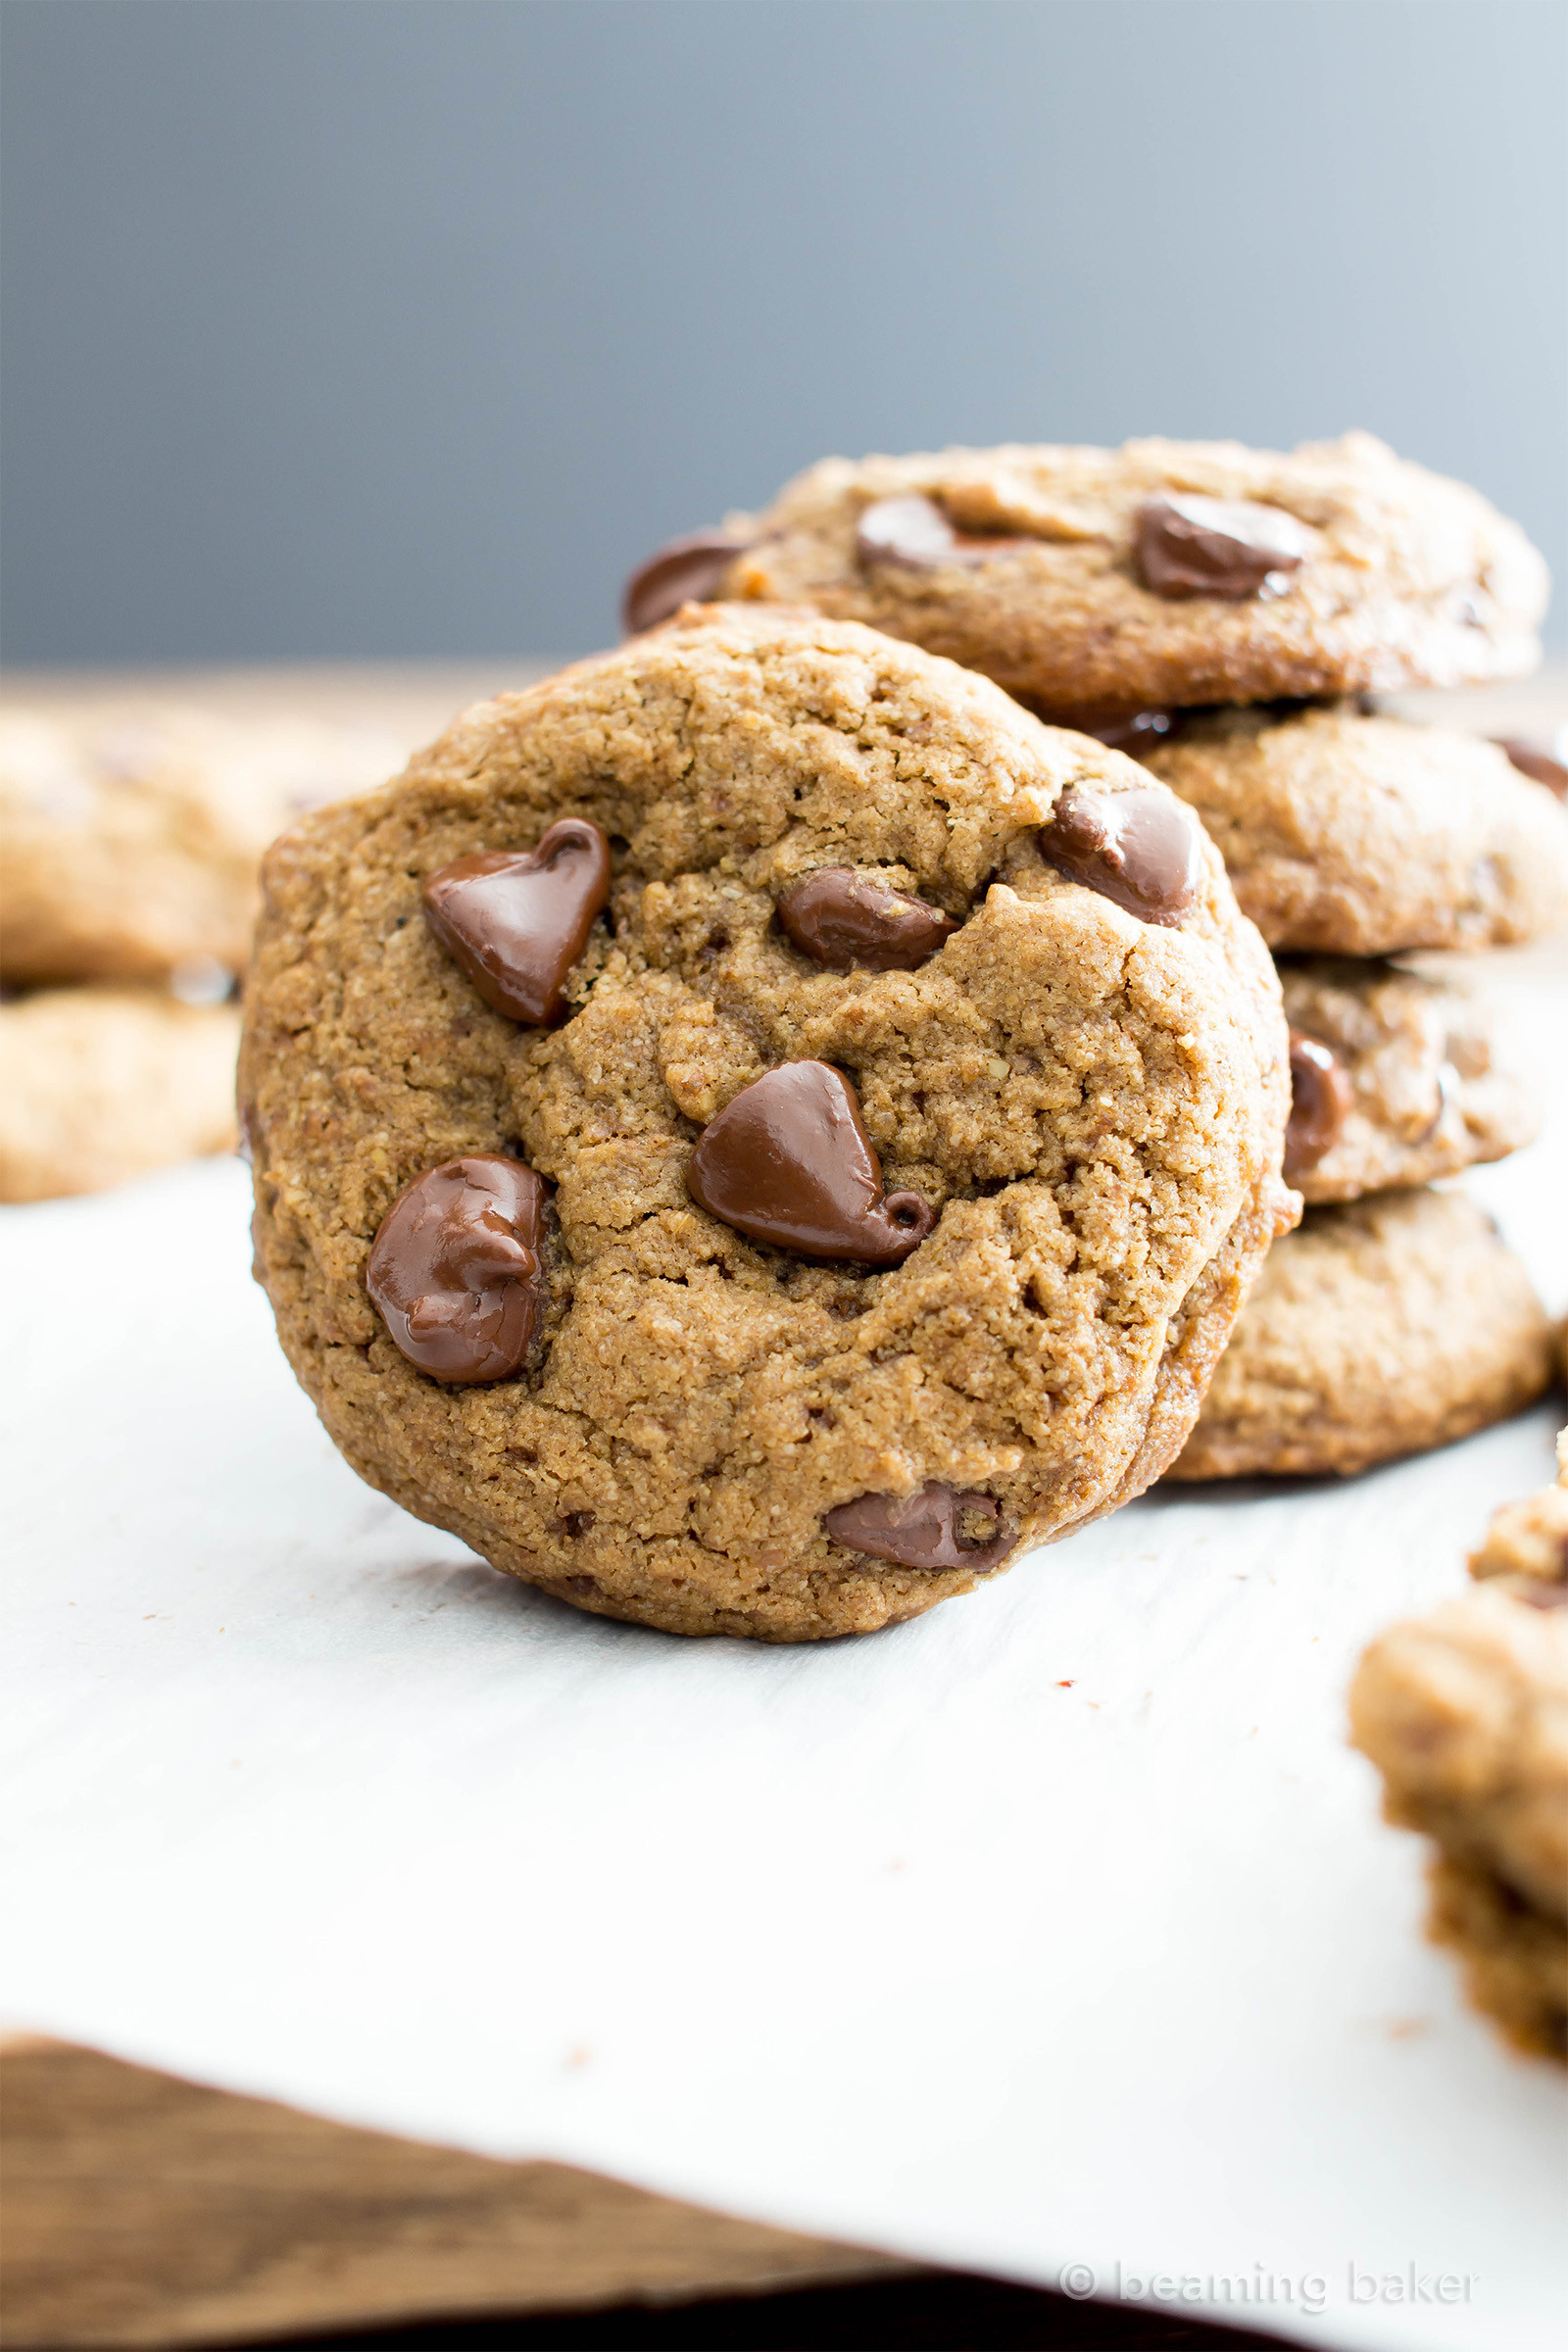 Vegan Cookie Recipes  Vegan Chocolate Chip Cookies Recipe Gluten Free Dairy